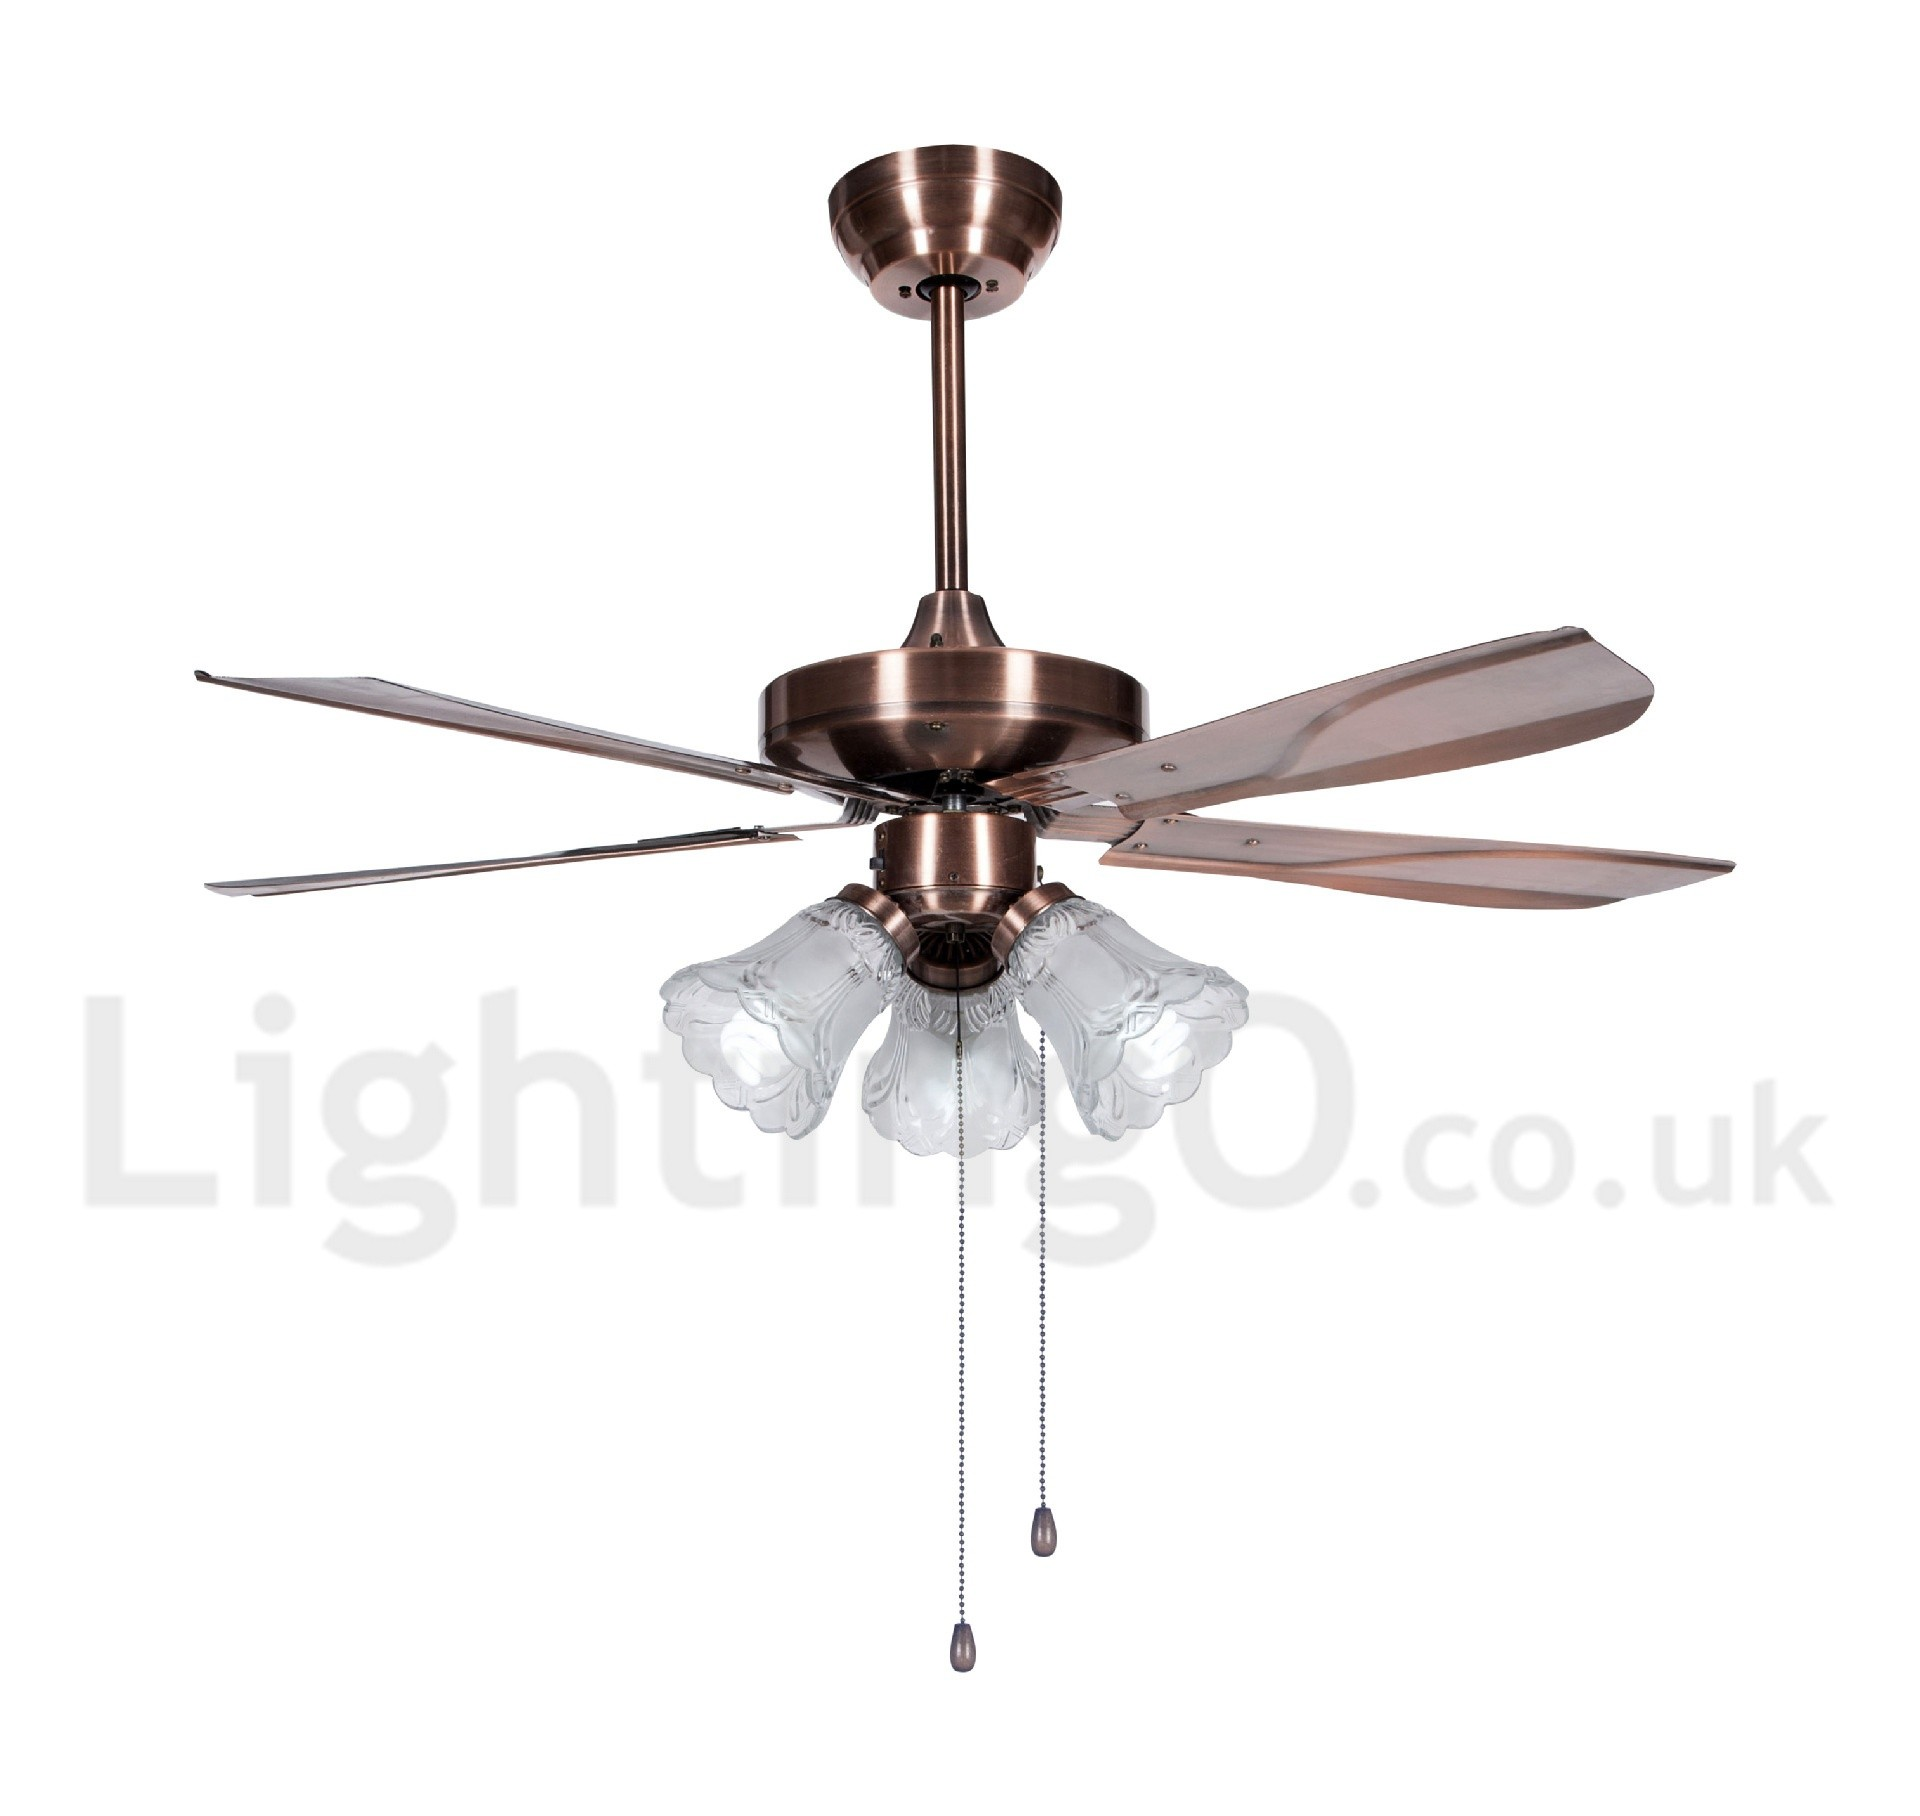 42 Modern Contemporary Ceiling Fan